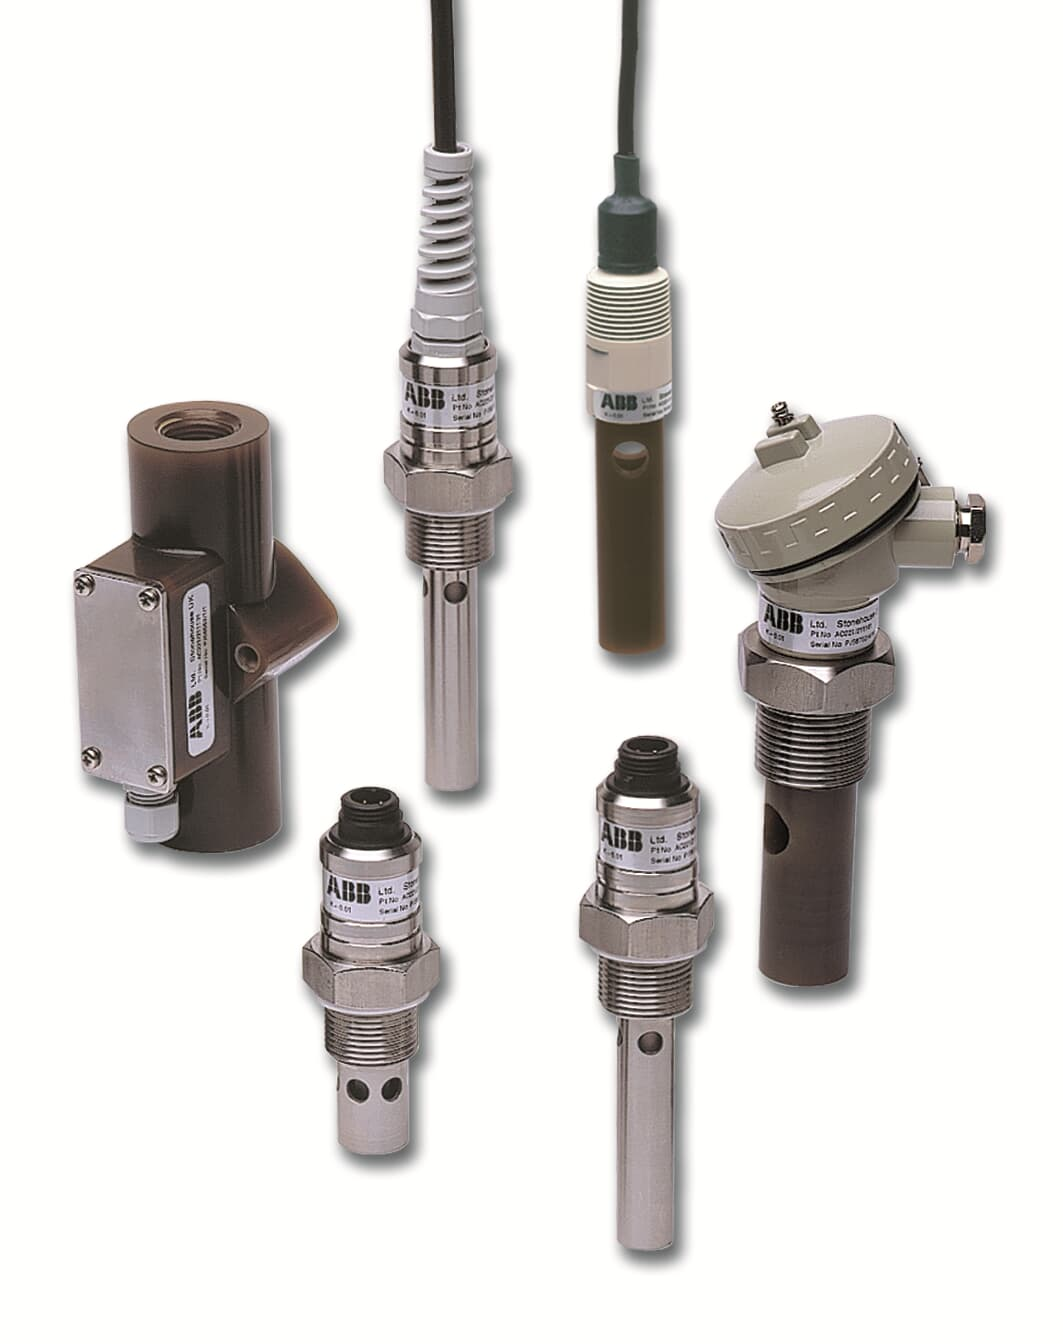 (Clockwise starting from left). AC212 carbon/epoxy flow-through, AC220 stainless steel fixed cable, AC213/0  carbon/epoxy submersible, AC210 carbon/epoxy terminal head, AC220 stainless steel detachable cable – cell constant (K) = 0.01, AC220 stainless steel detachable cable – cell constant (K) = 0.01